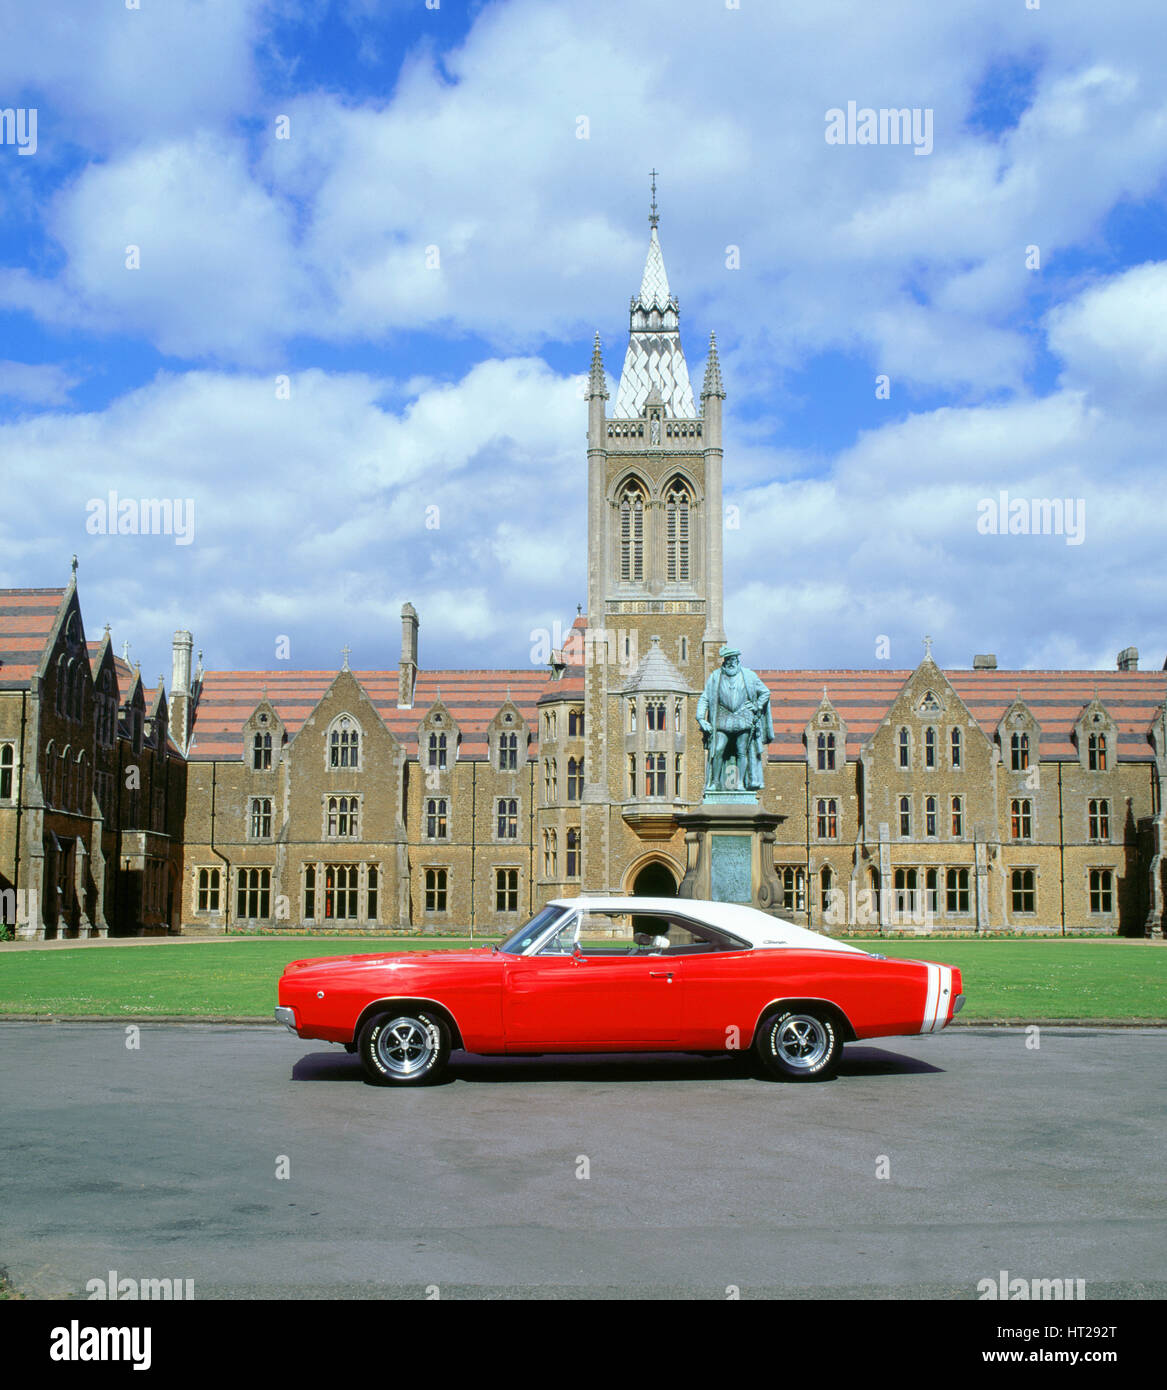 hight resolution of 1968 dodge charger 440 magnum artist unknown stock image